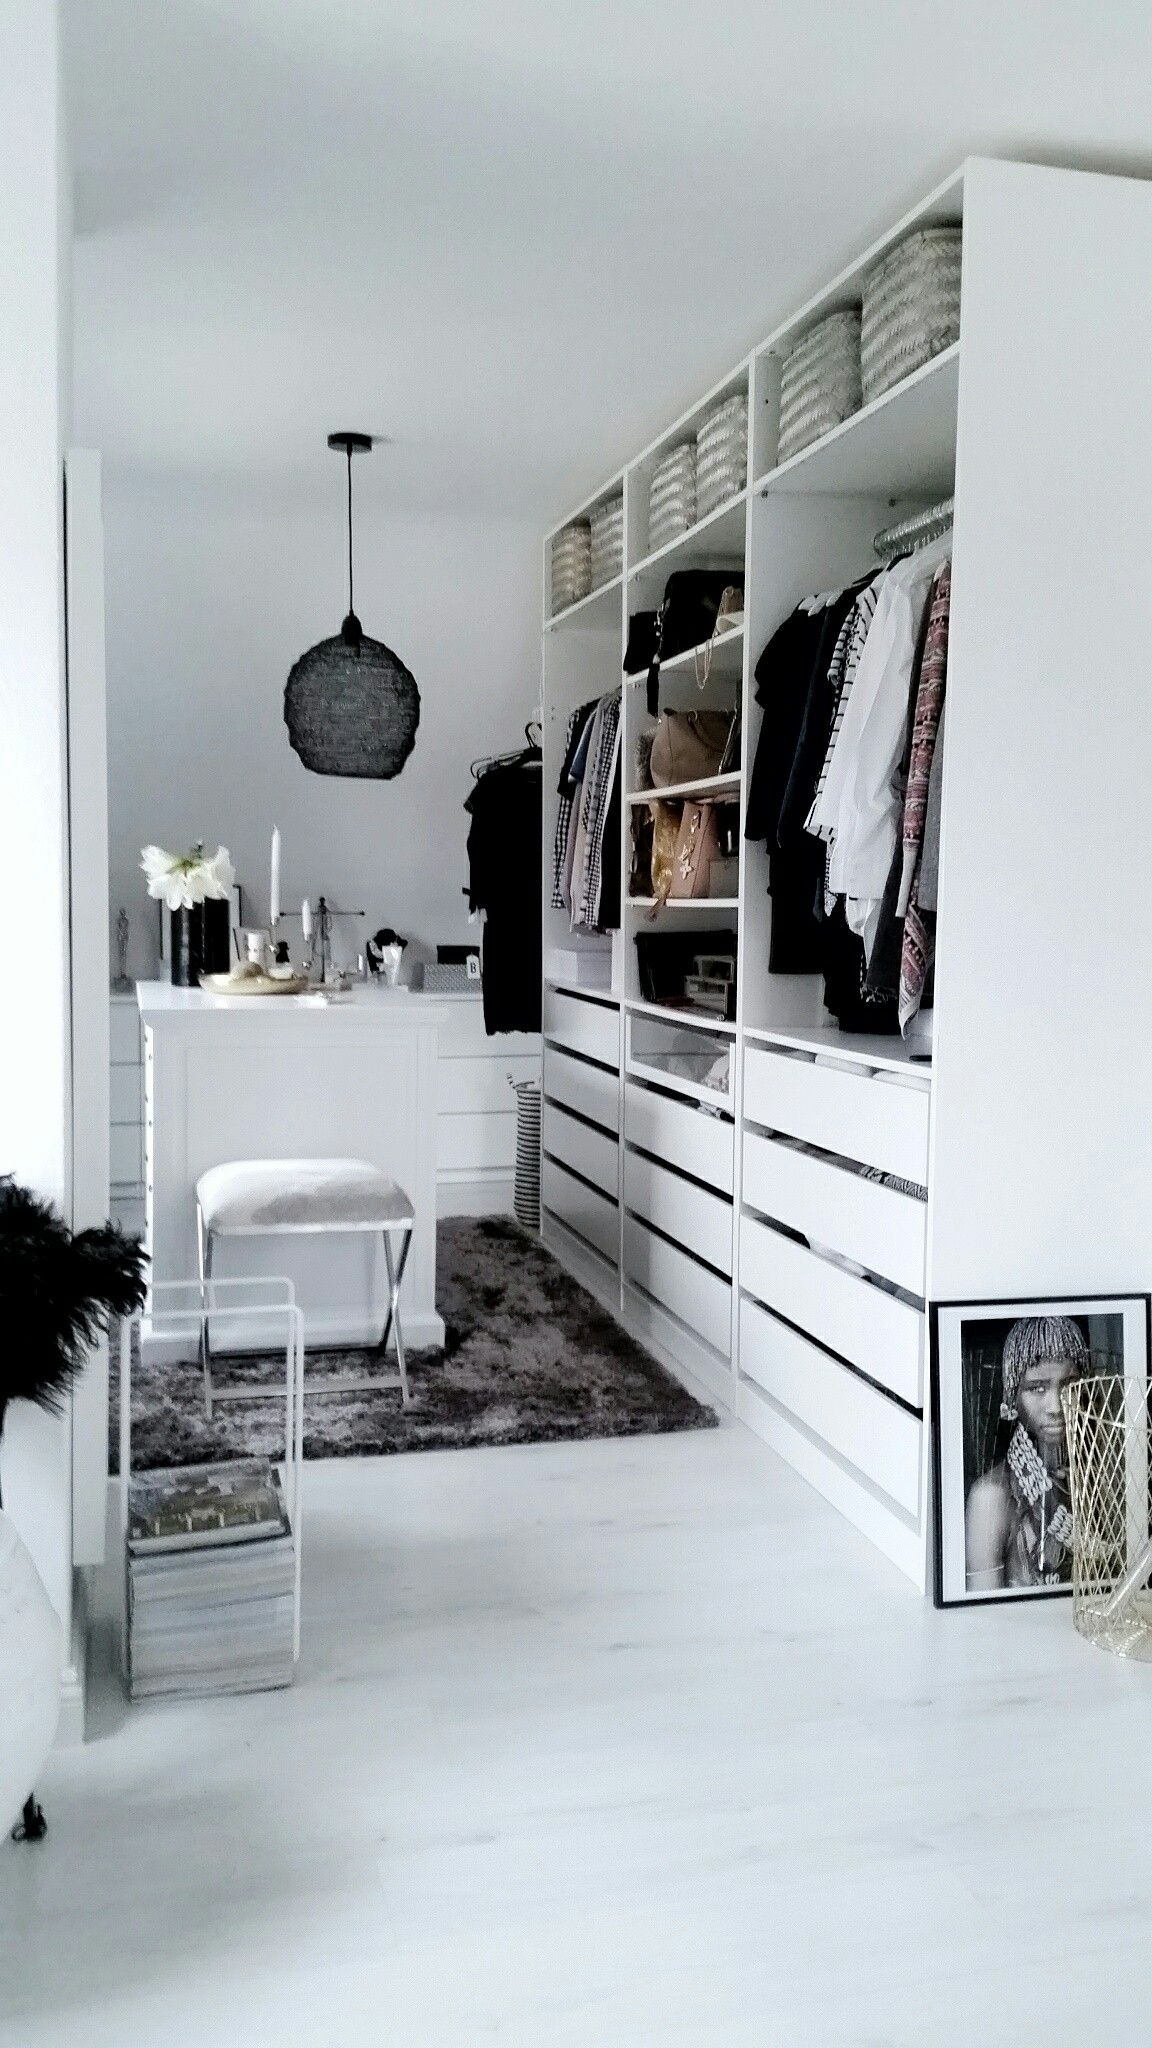 ikea pax ankleidezimmer inspiration weiss dressing room ankleidezimmer wardrobe design. Black Bedroom Furniture Sets. Home Design Ideas